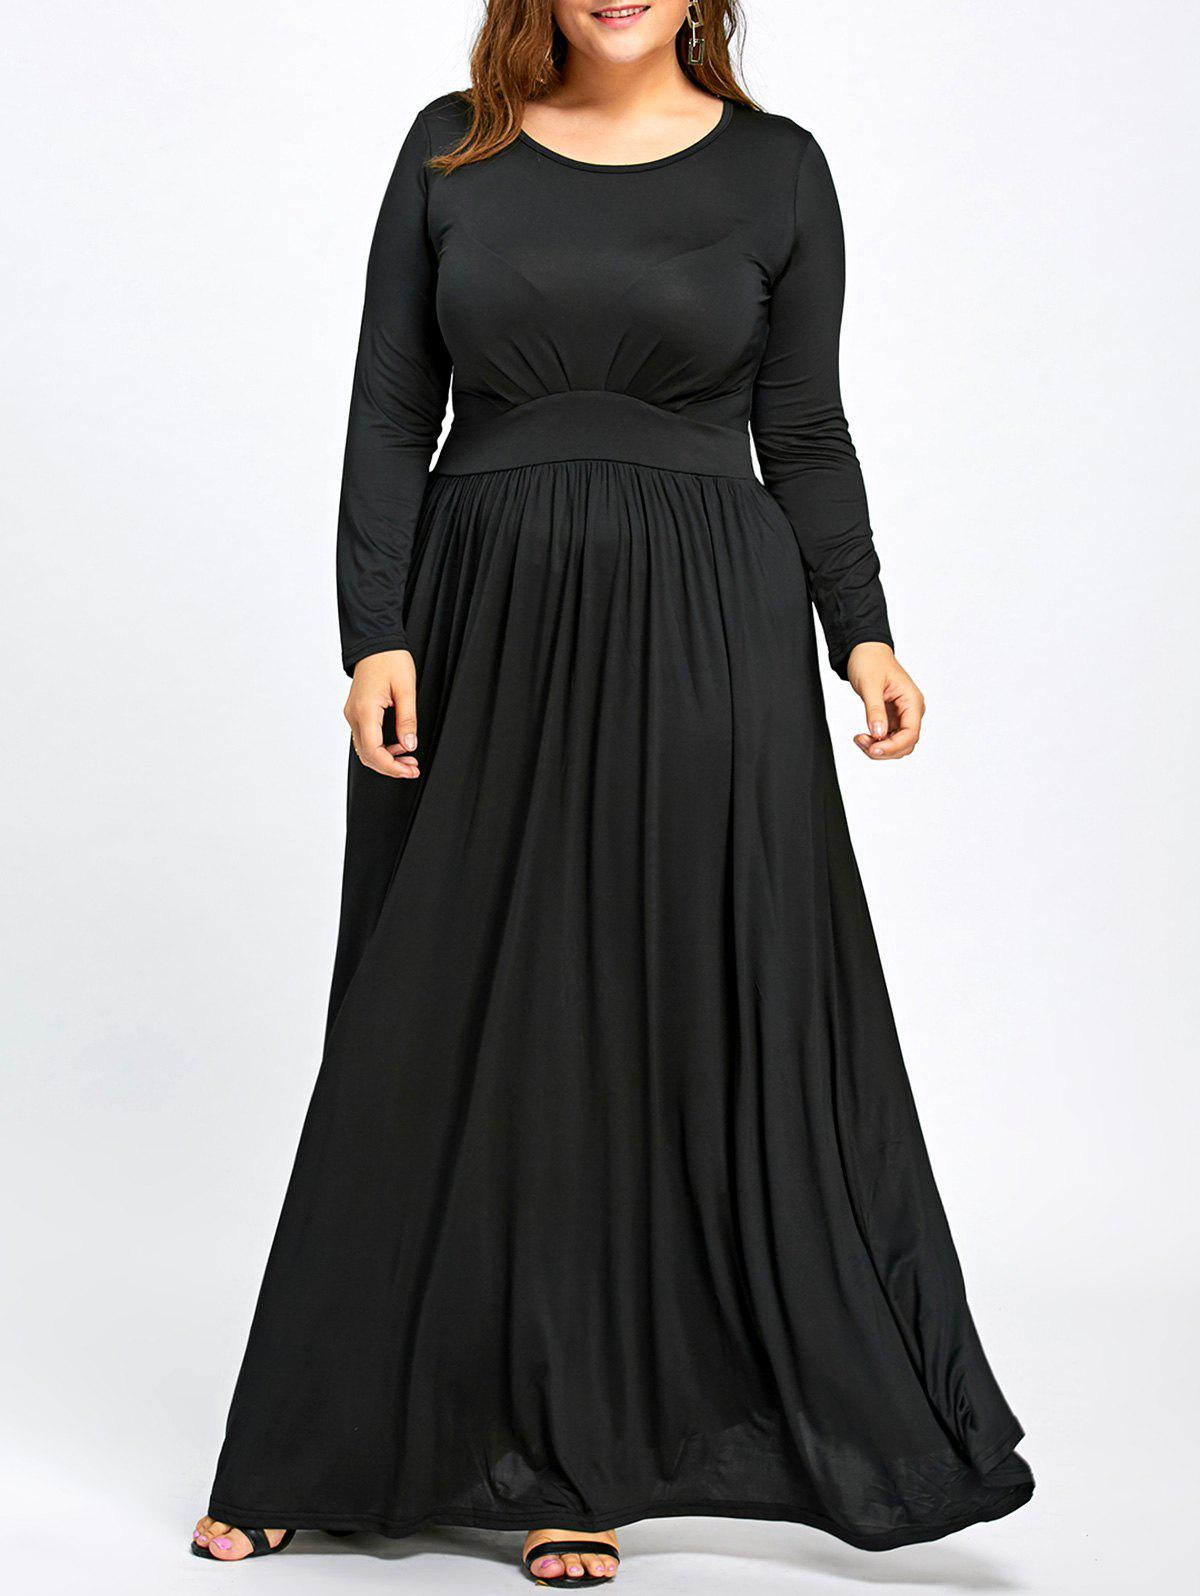 5b285283cb63 30% OFF] Floor Length Plus Size Long Sleeve Dress | Rosegal